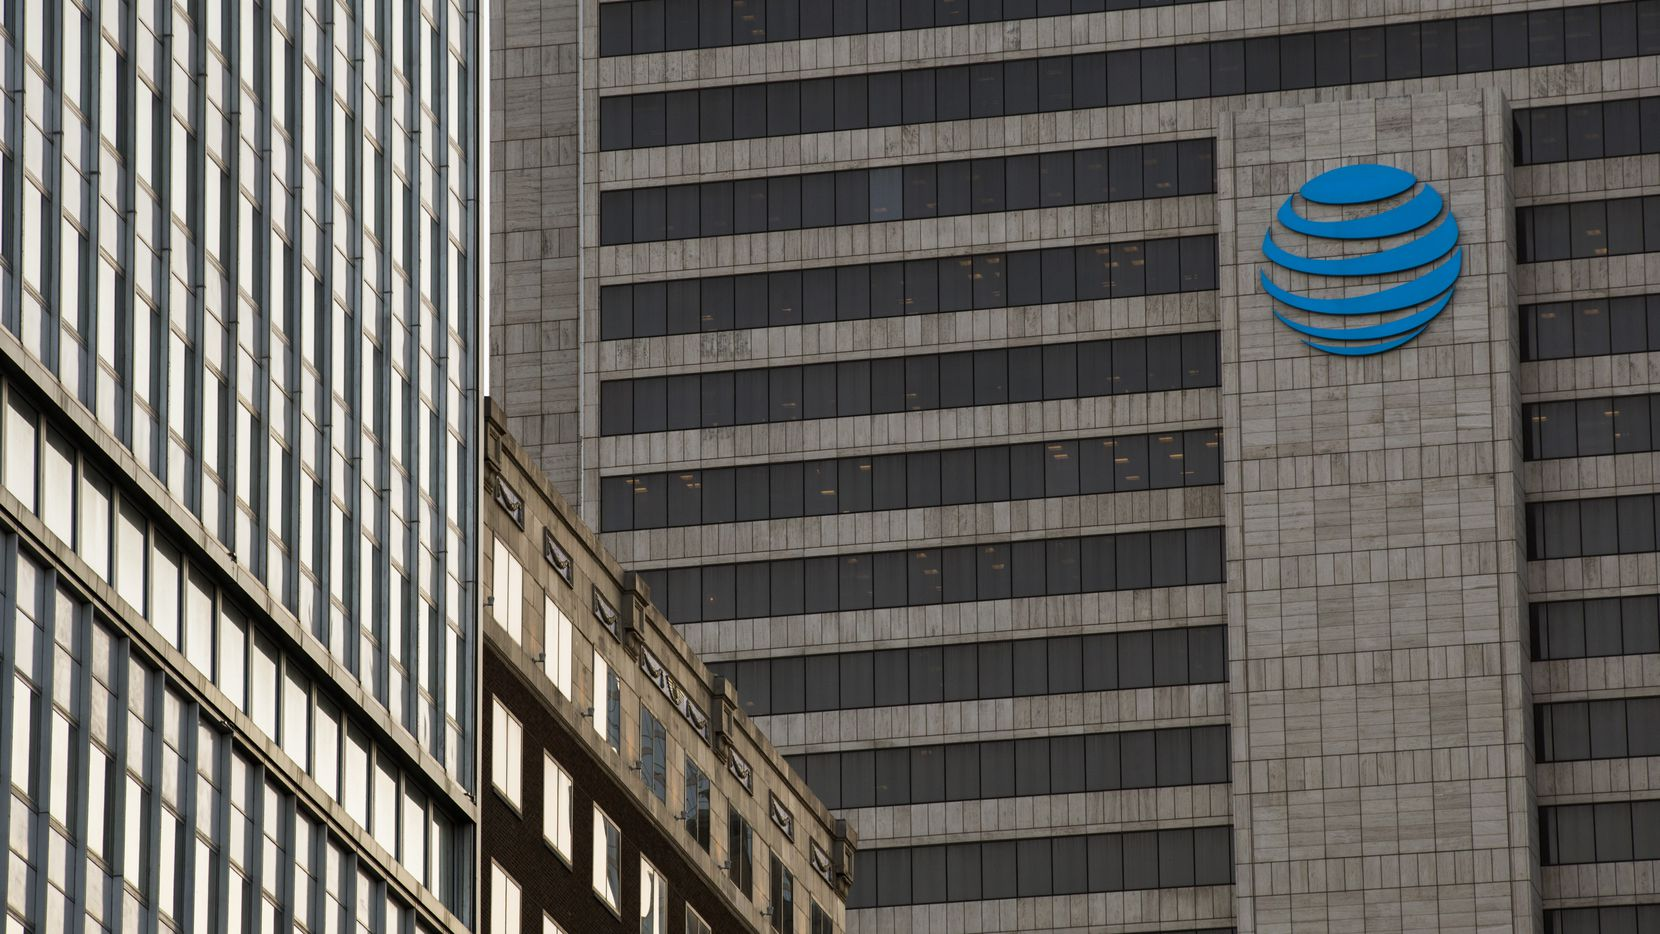 The AT&T Headquarters building in downtown Dallas is pictured in this file photo. The company's job fair will take place in Richardson on Wednesday.